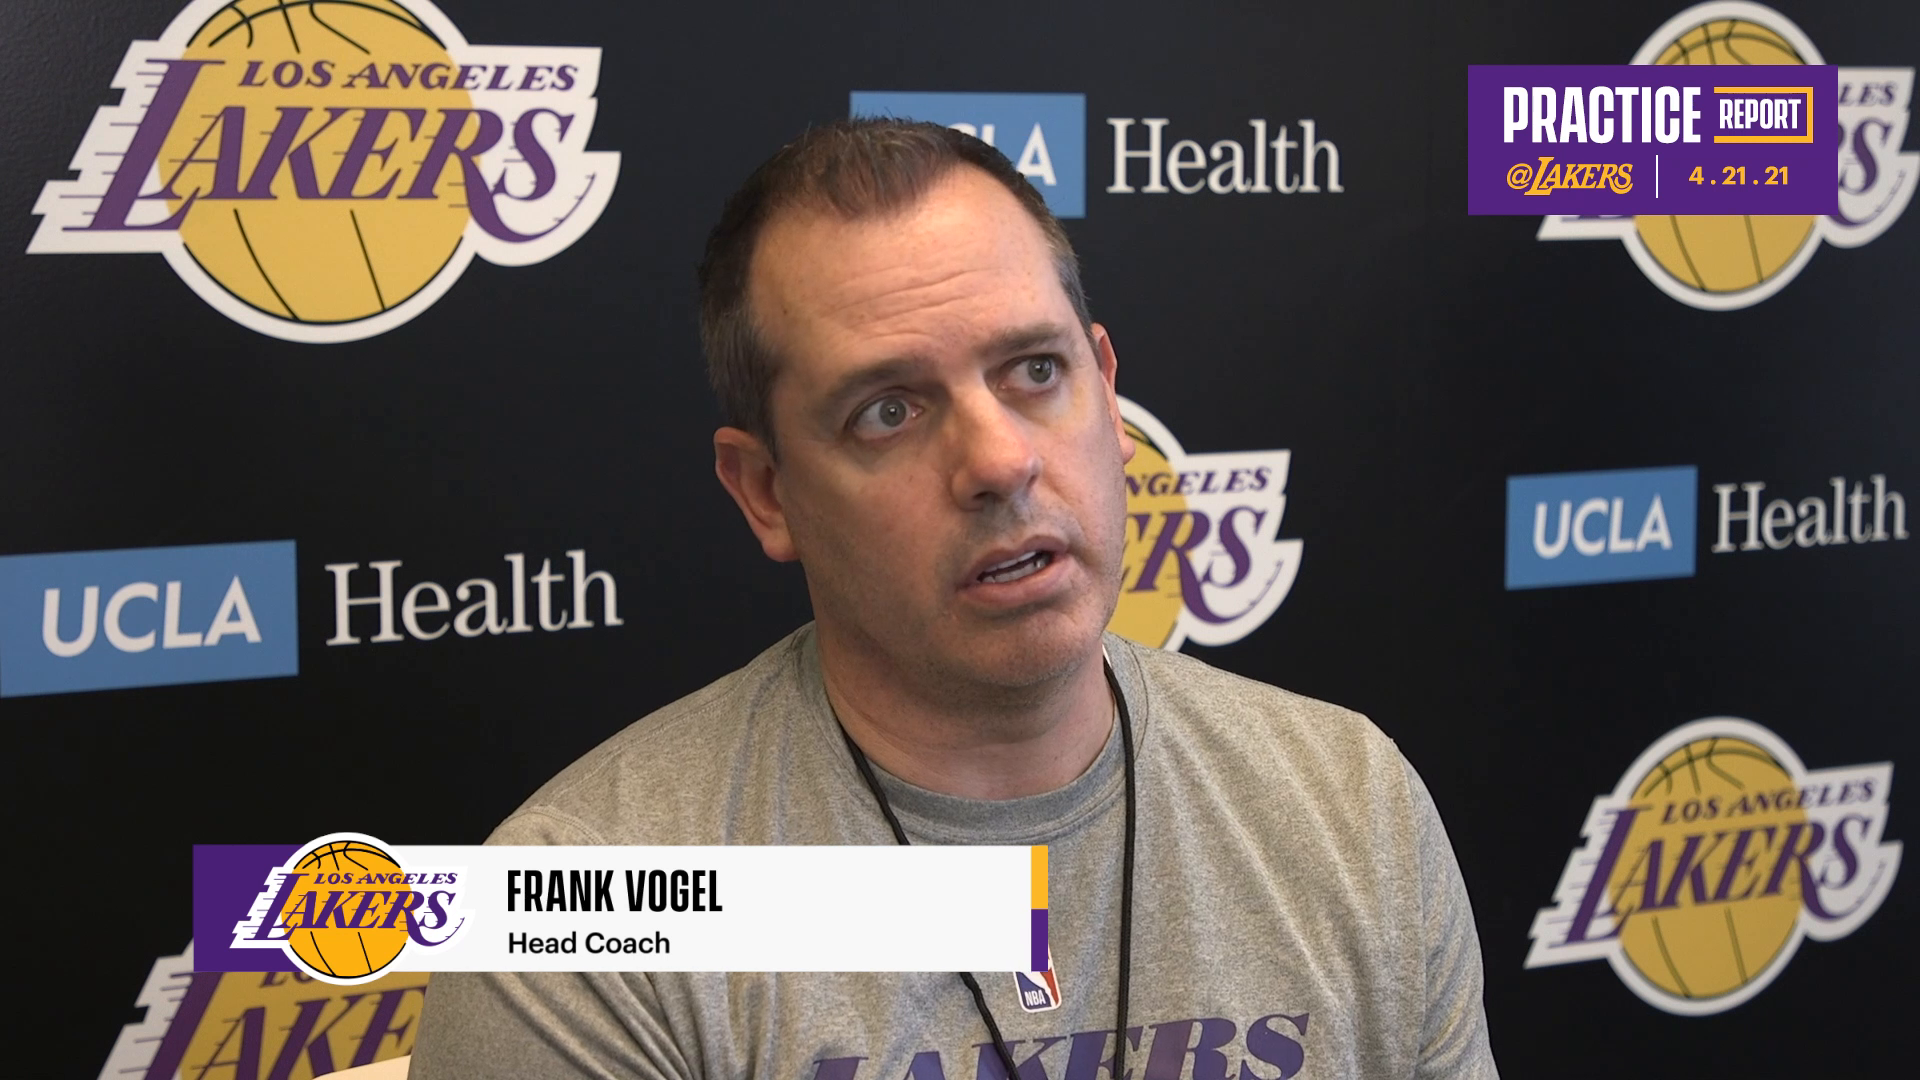 Lakers Practice Report: Frank Vogel (4/21/21)